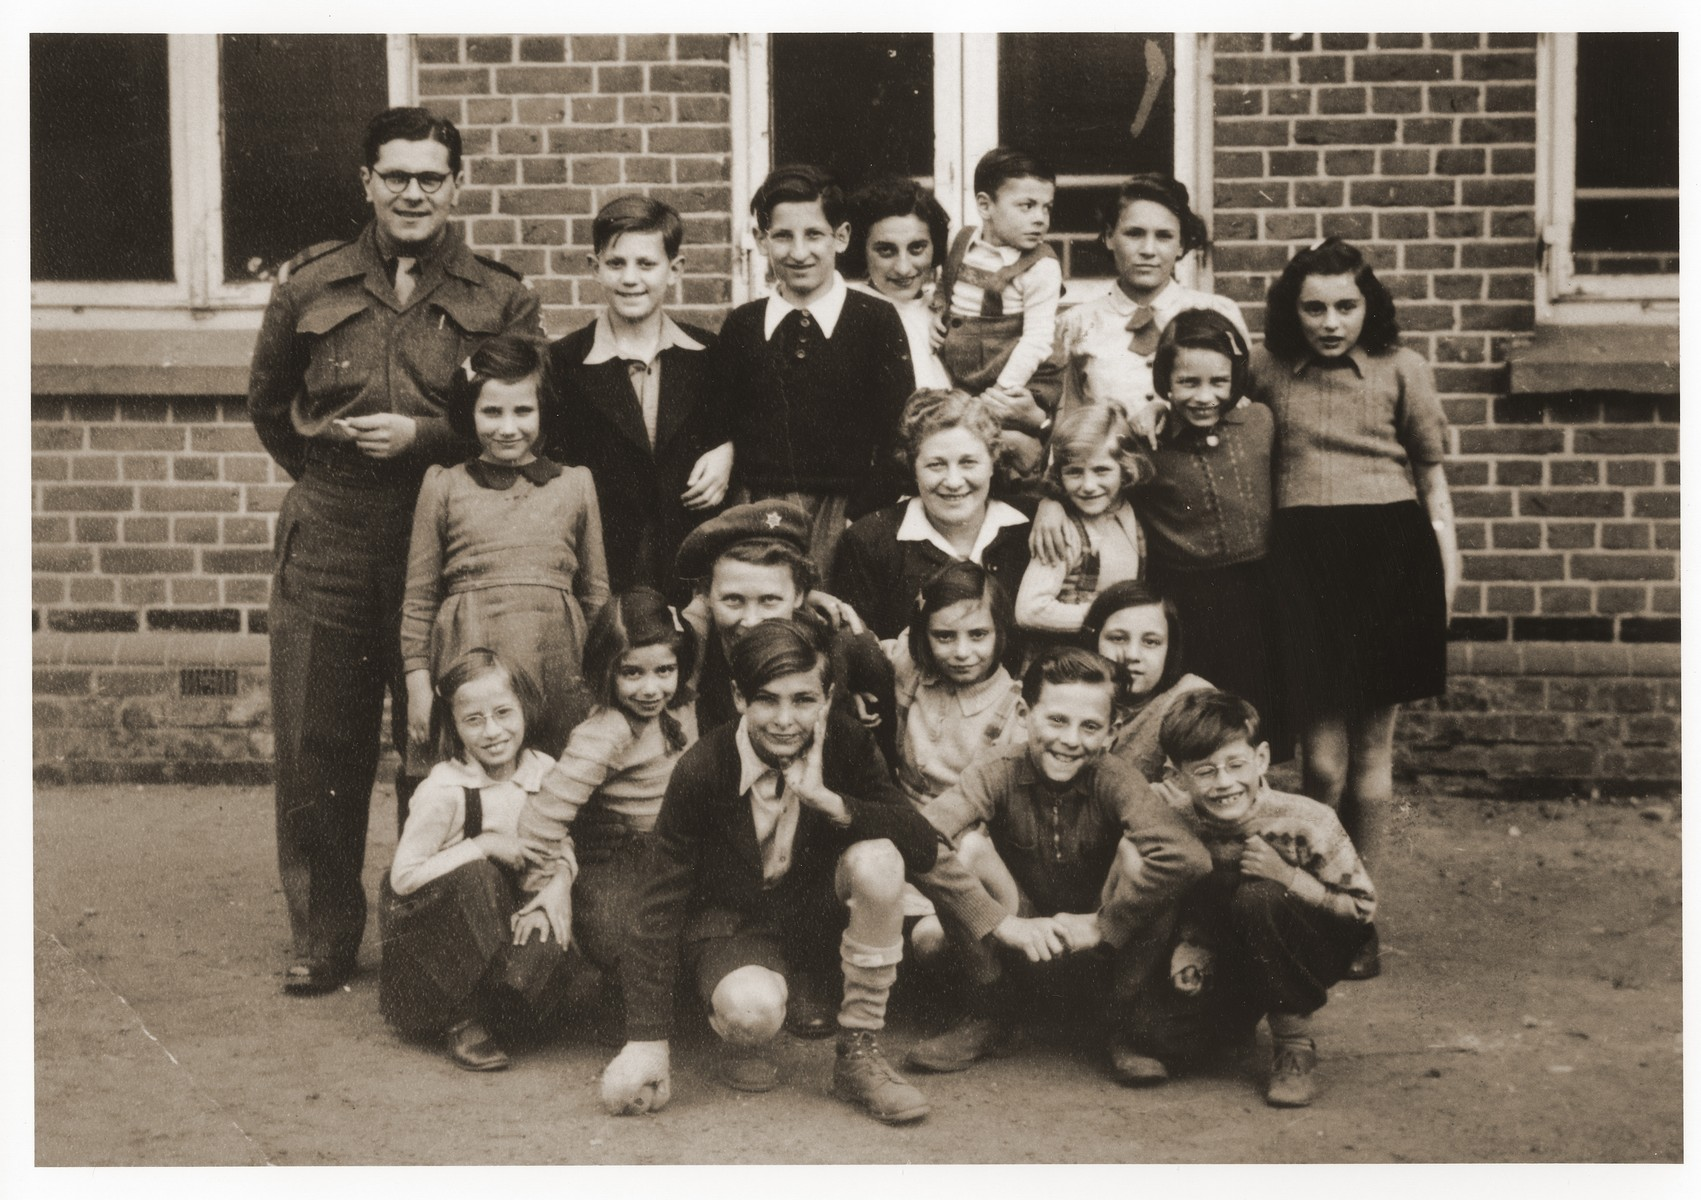 Group portrait of students and teachers at the Lueneberg children's home and school.  Among those pictured are Dorothea Isaacsohn (back row, wearing a tie), Alfred Fromm and Fred Taucher.